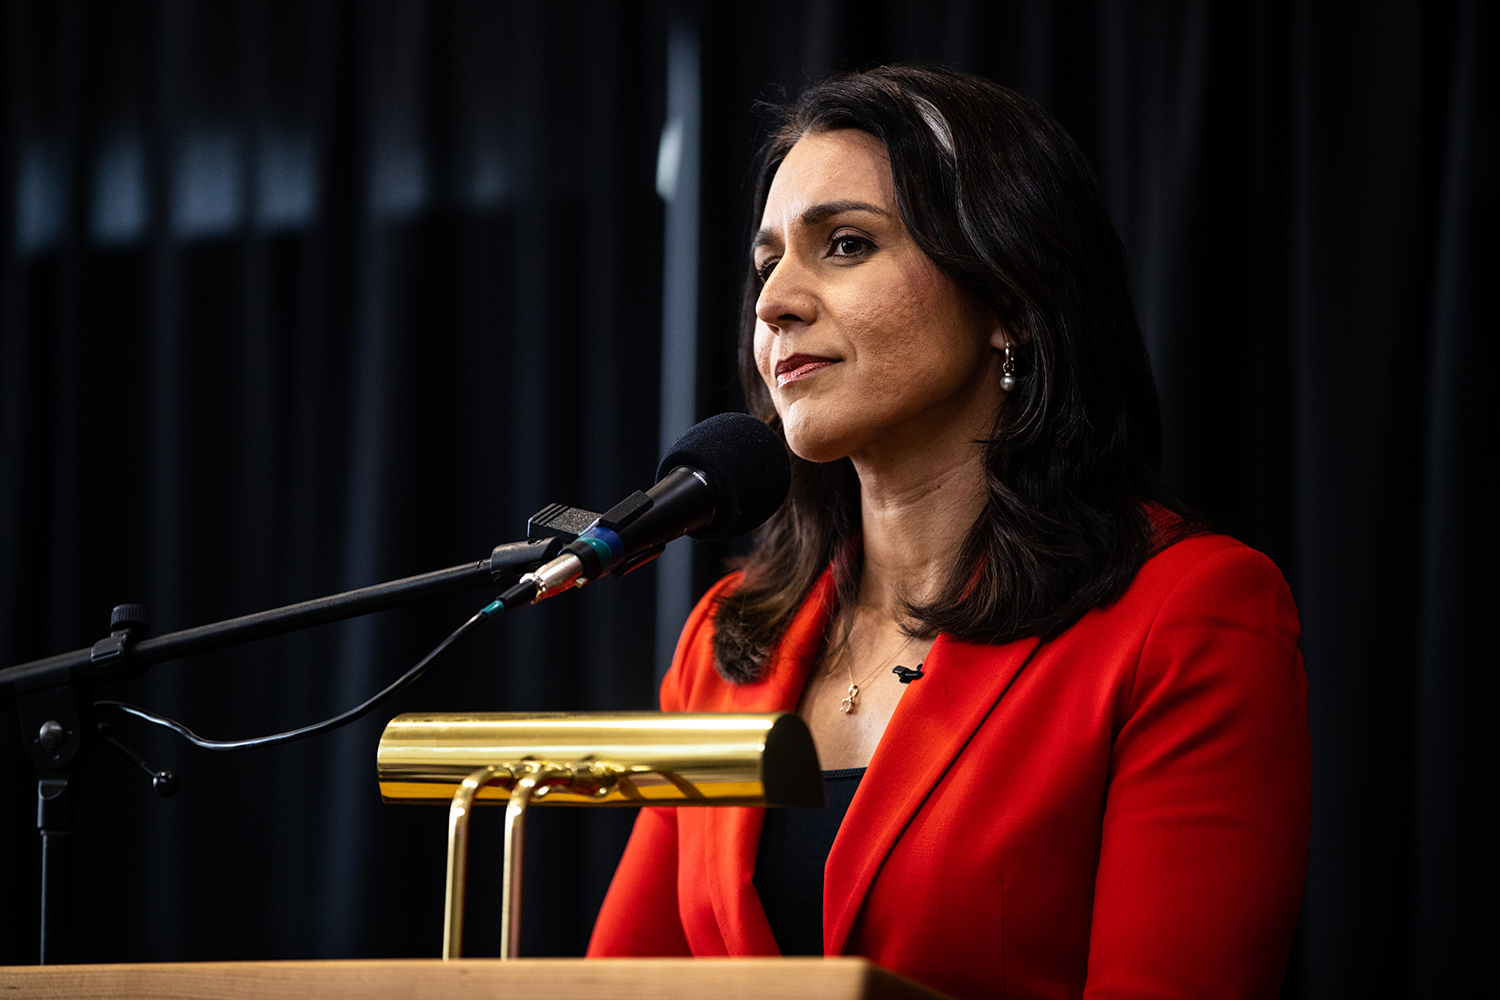 Hawiian Representative Tulsi Gabbard during a campaign event at the Fairfield Arts and Convention Center on Monday Feb. 11, 2019. Rep. Gabbard visited Des Moines, Fairfield, and Iowa City on a tour of Iowa cities as she begins her 2020 presidential bid.